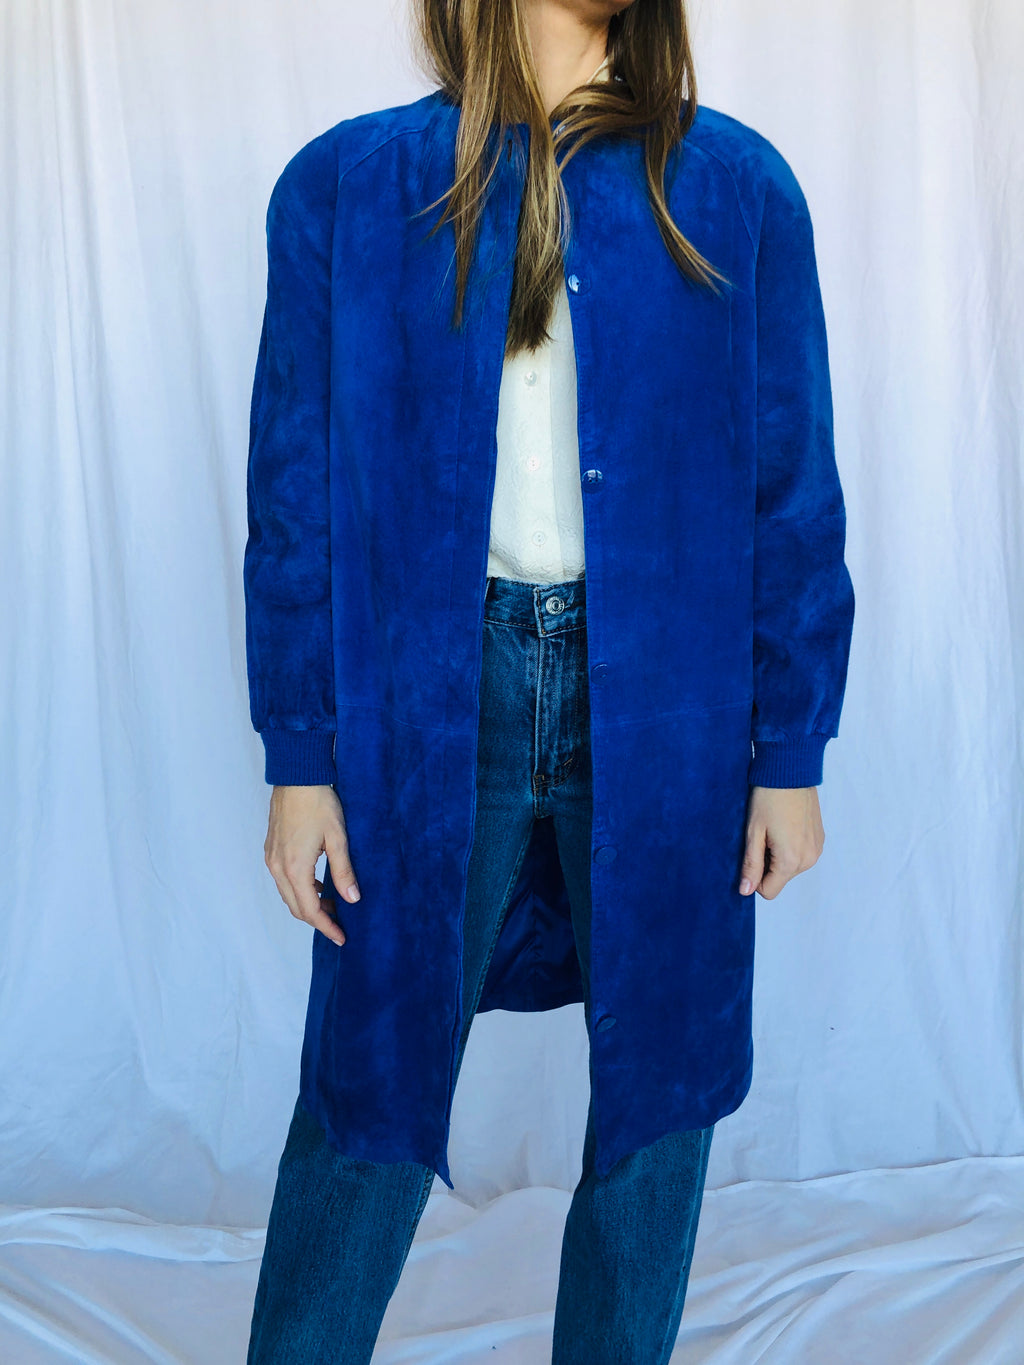 Saks Fifth Avenue Vintage Royal Blue Suede Leather Shoulder pads Long Coat Jacket S